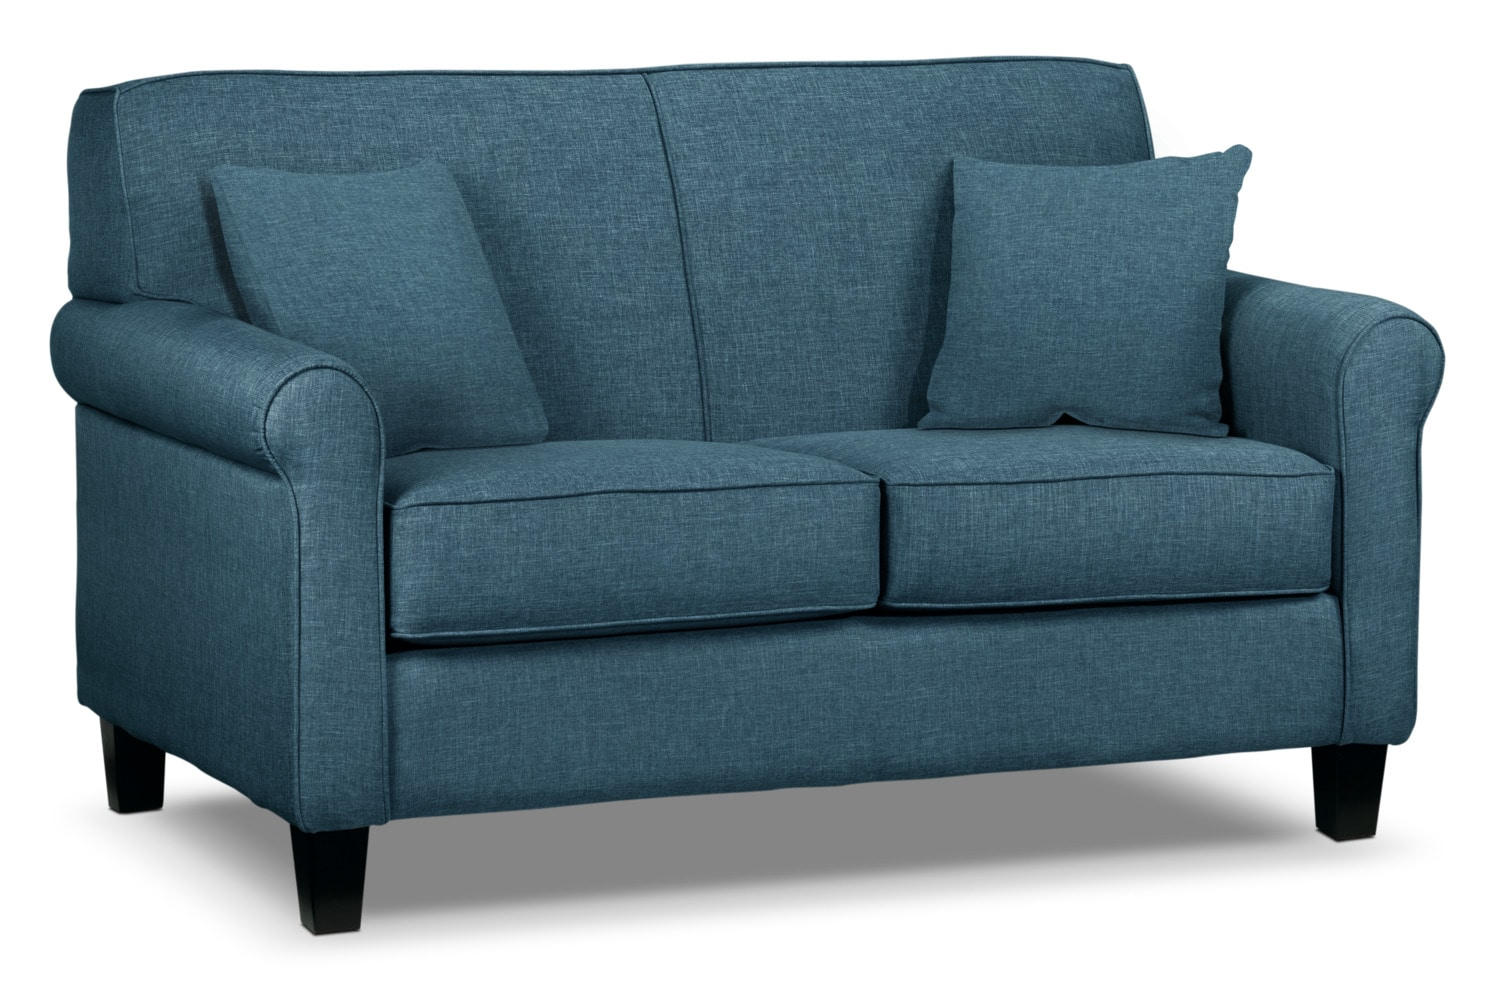 Living Room Furniture - Ariel Loveseat - Riviera